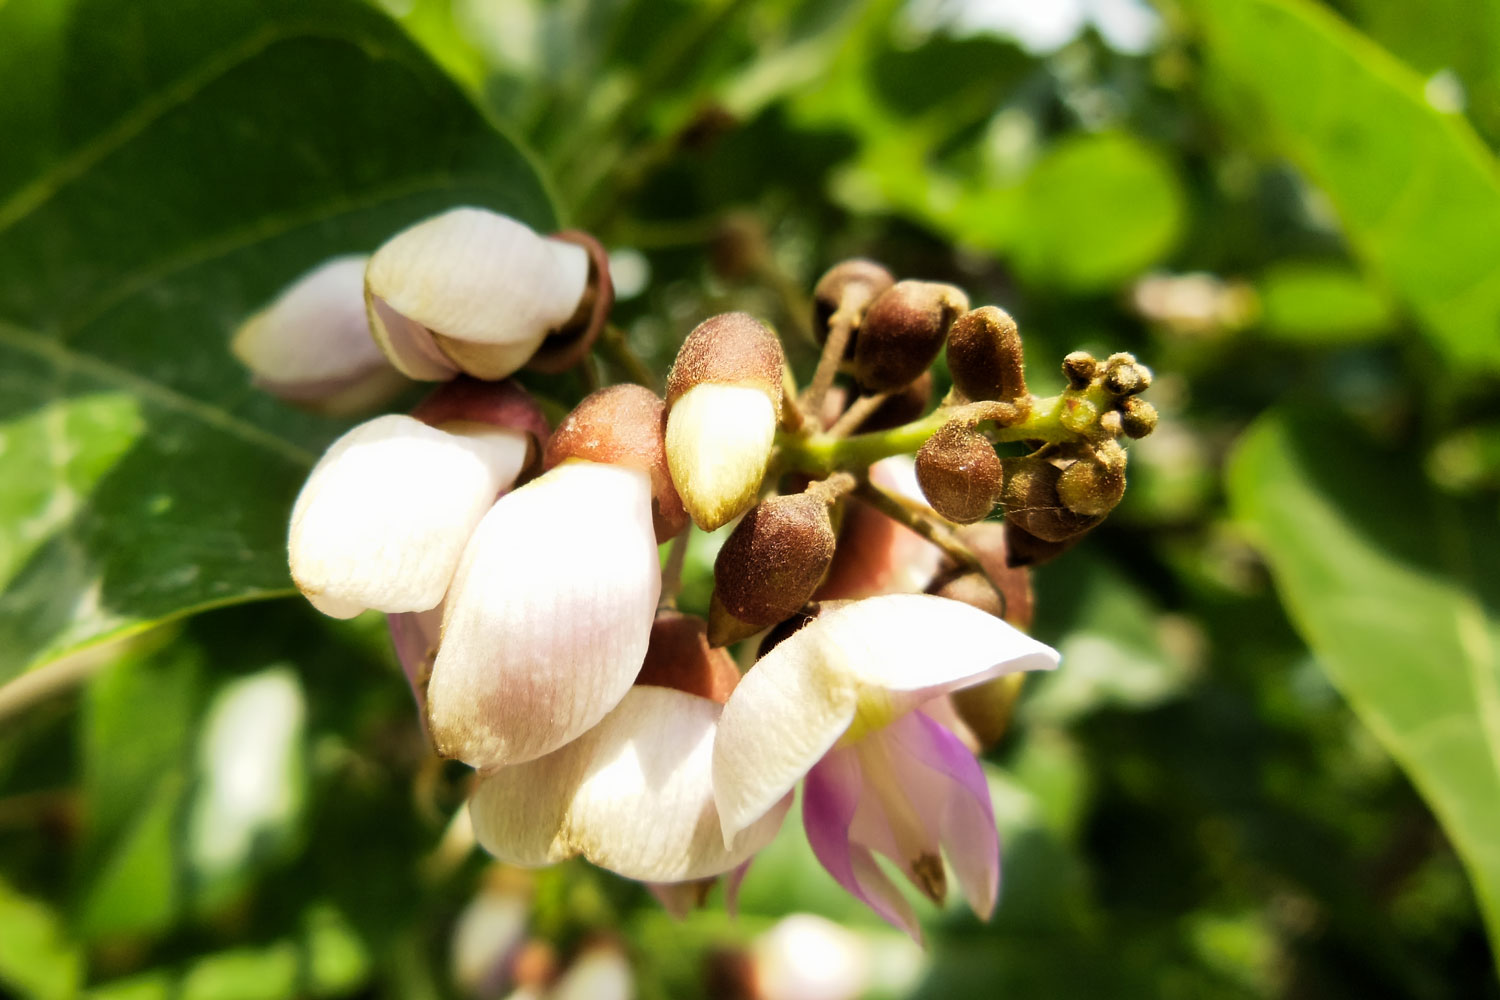 LAND-JOURNAL-Blog-Awareness-Pongamia-An-Environmentally-Friendly-Alternative-To-Soy-Beans-2019